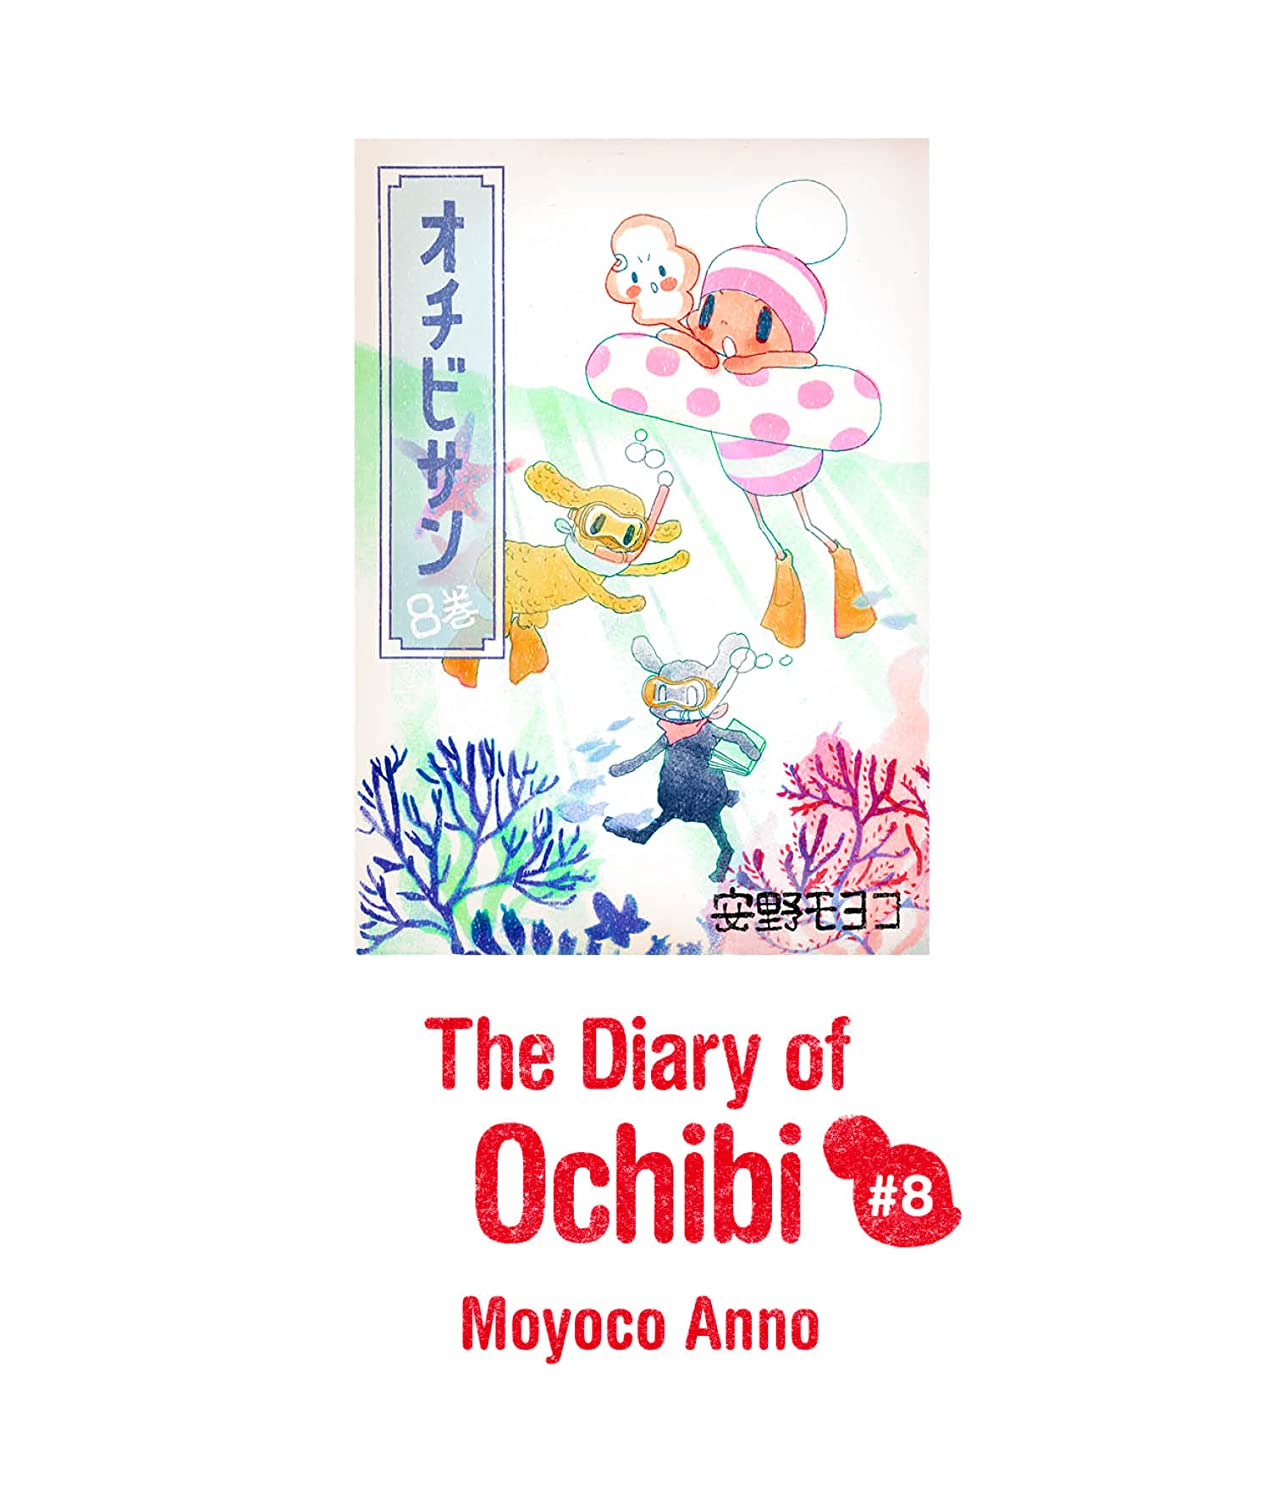 The Diary of Ochibi (English Edition) Vol. 8